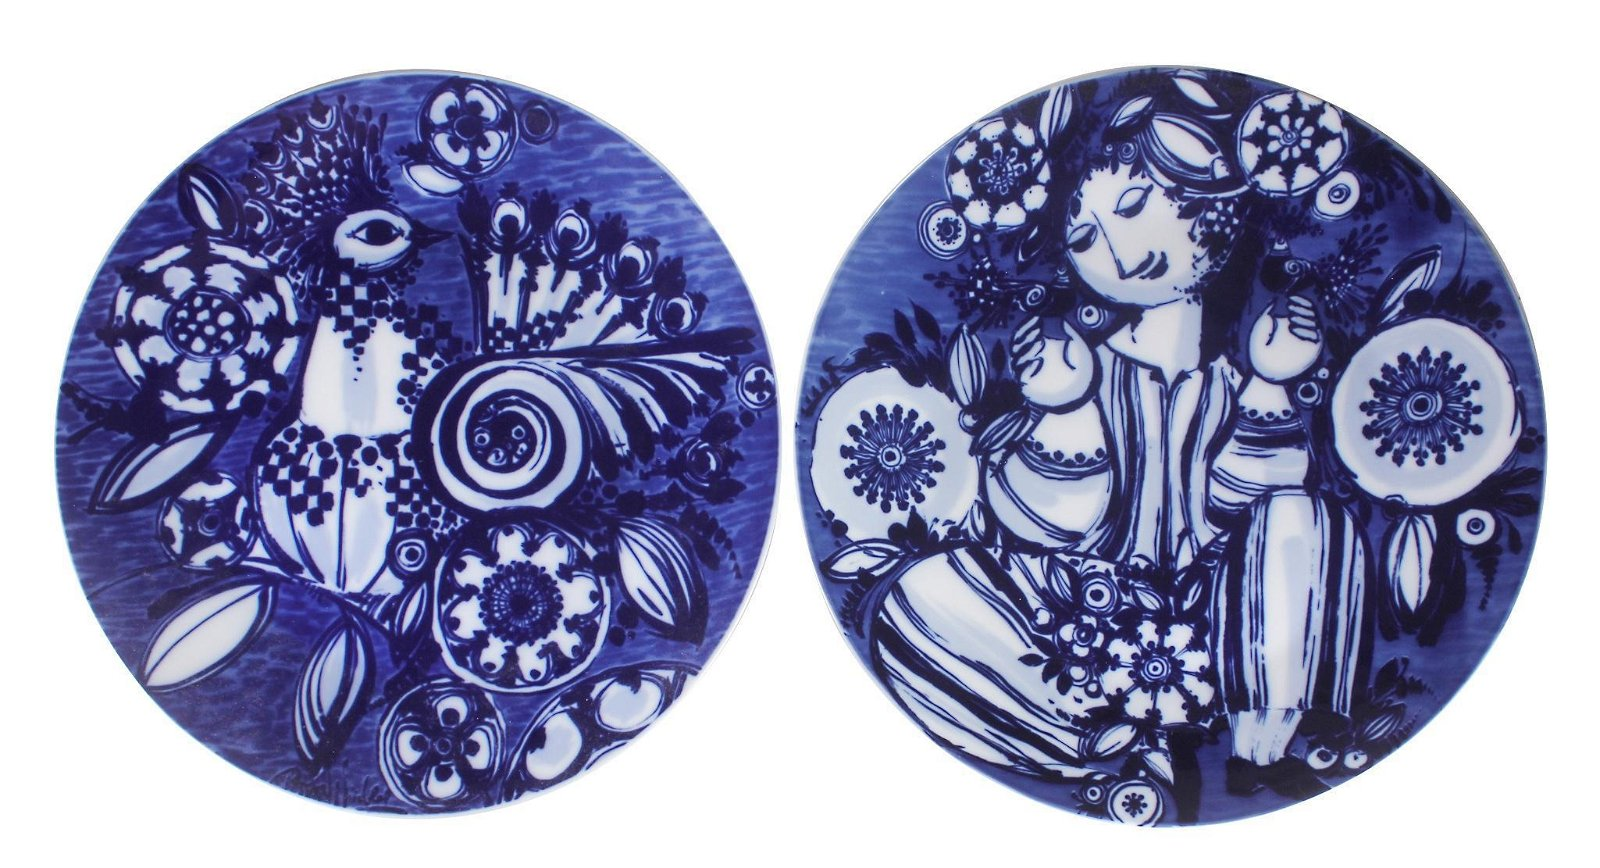 Two Rosenthal Bjorn Wiinblad Porcelain Chargers